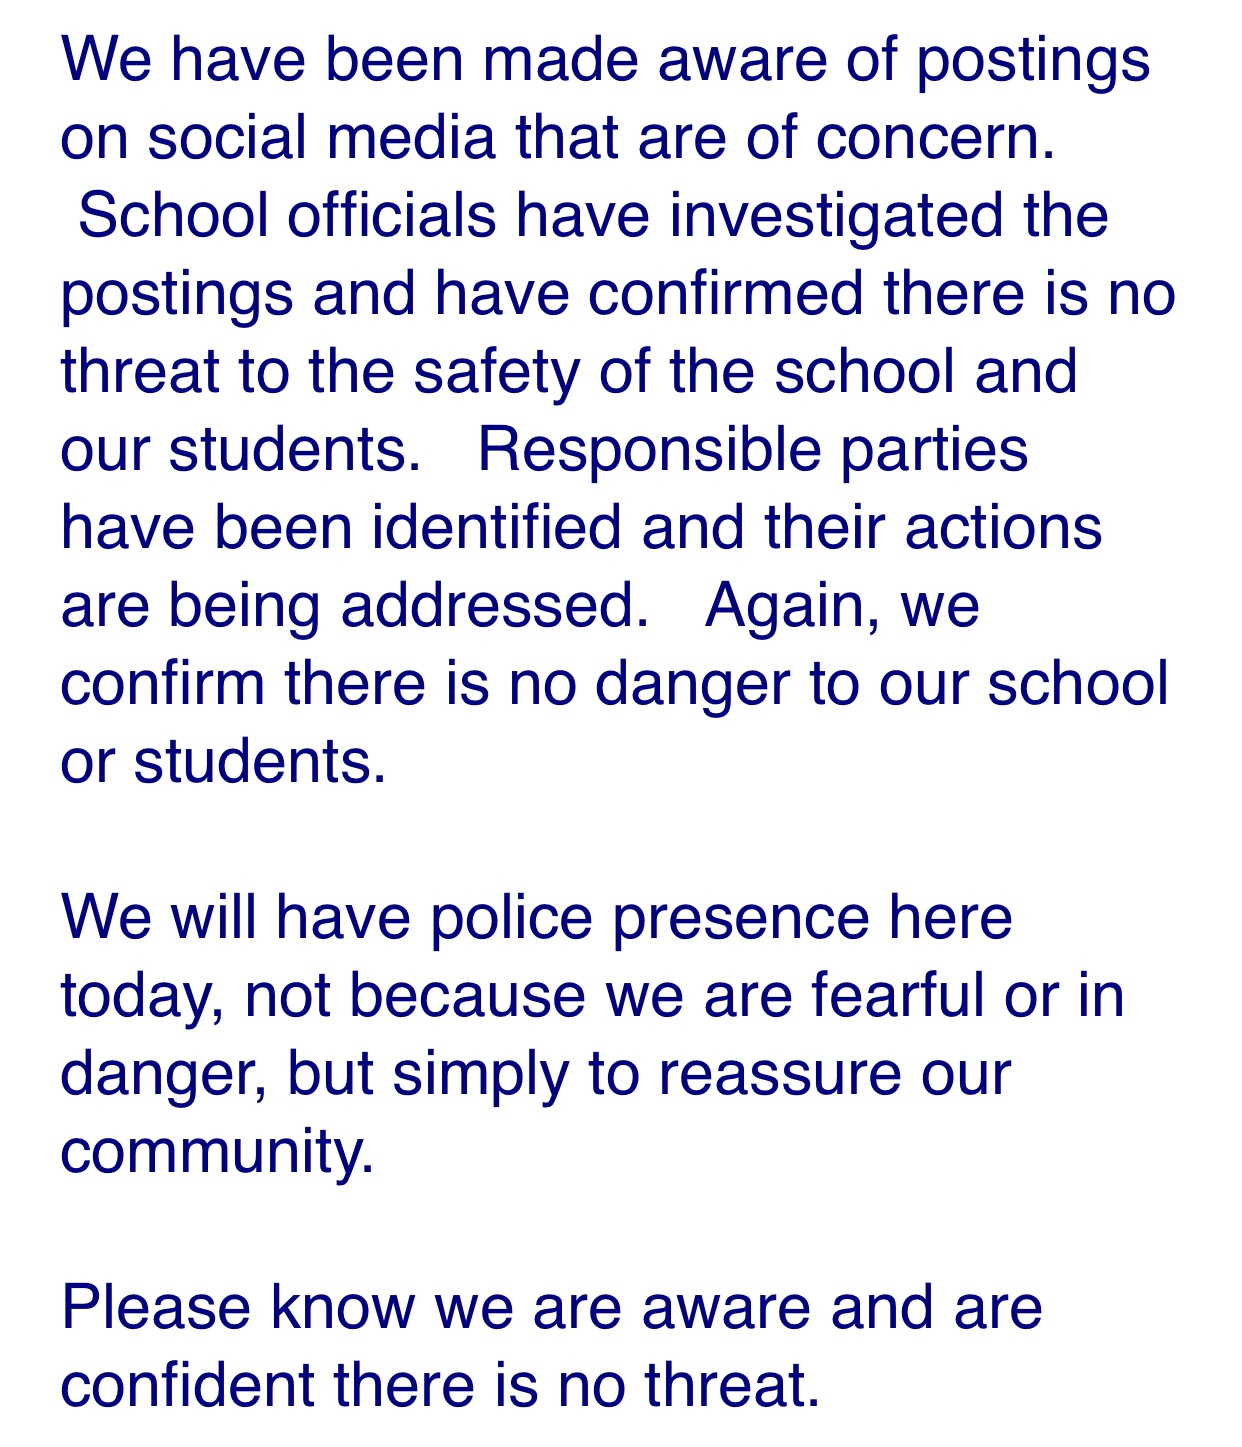 This email was sent to all staff and parents of students to assure the safety of the East community.